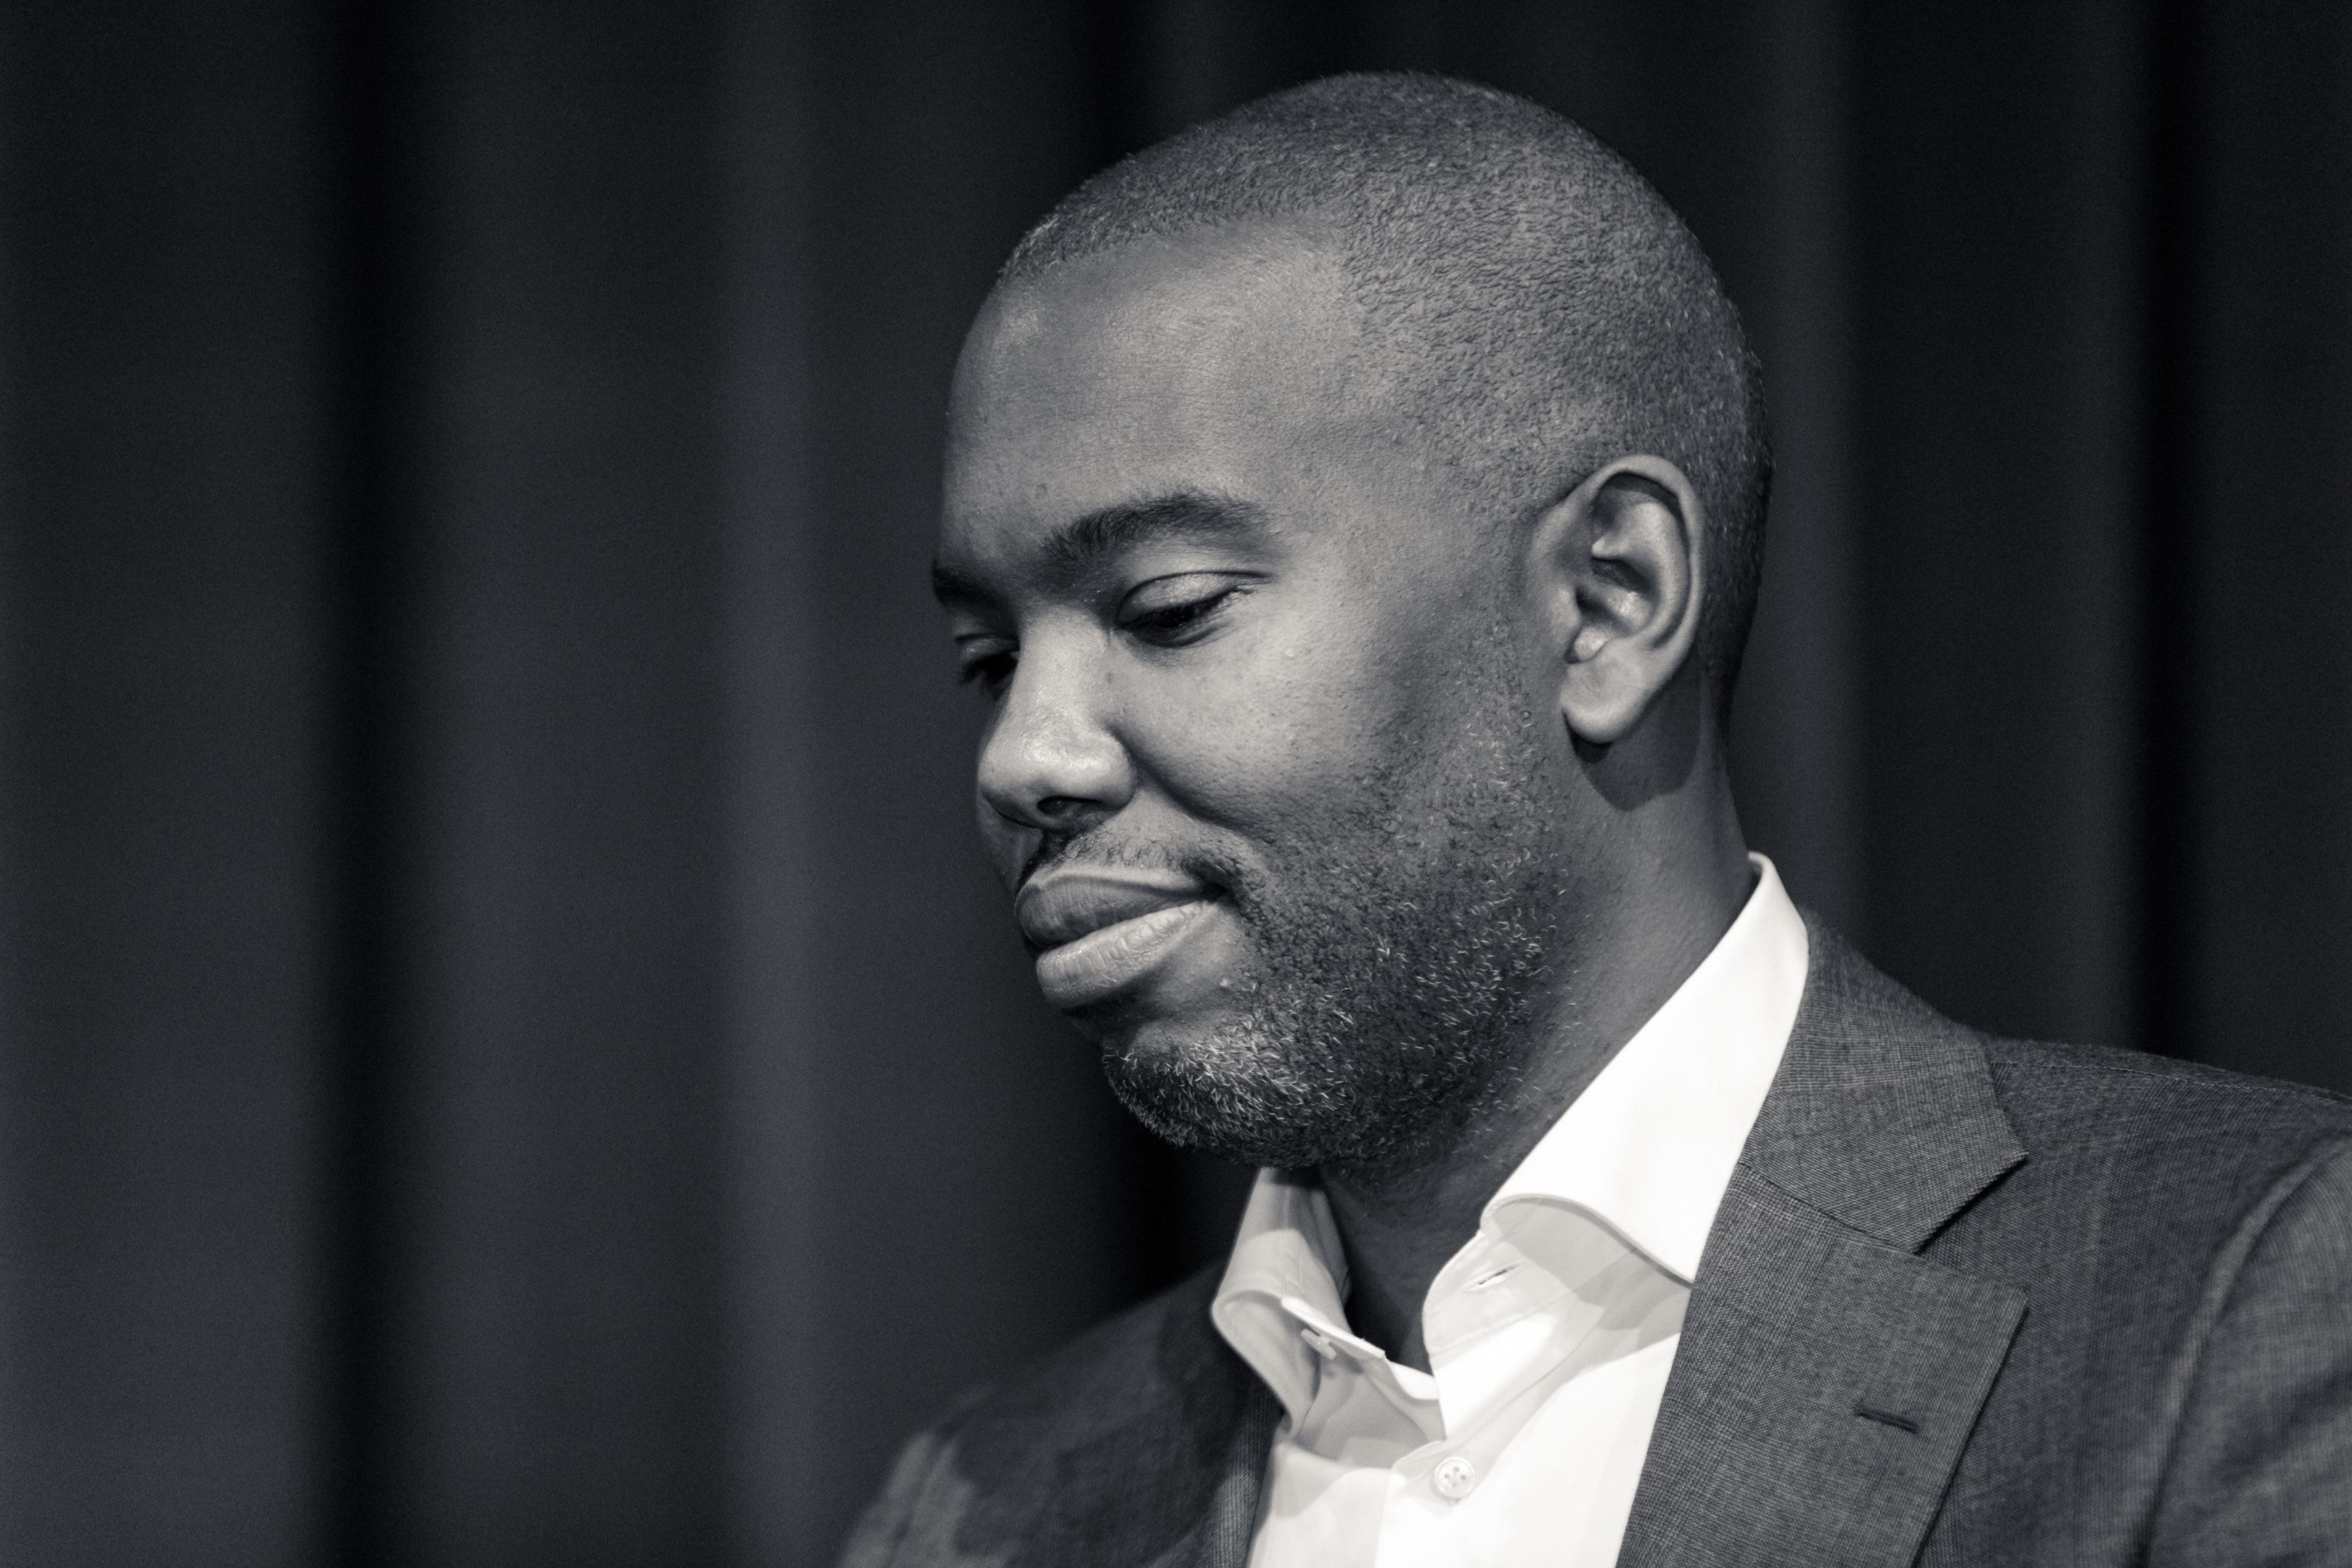 Ta-Nehisi Coates, who wrote the much-discussed essay